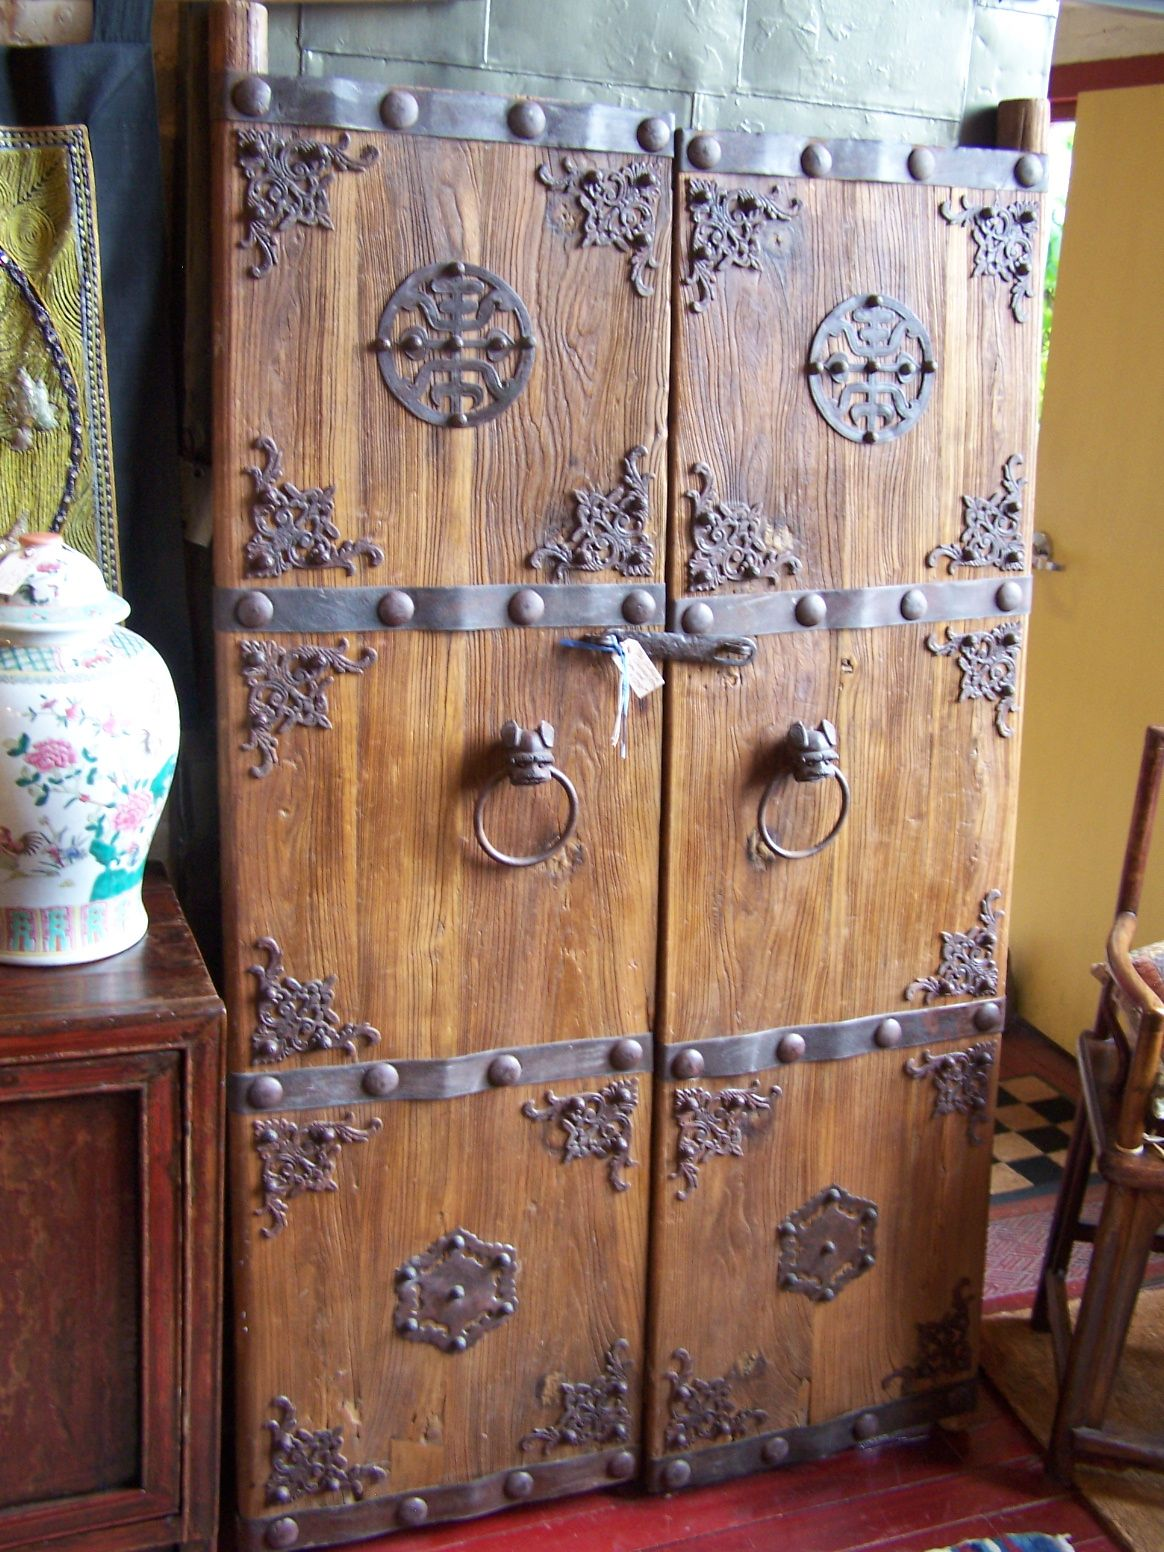 chinese antique dinner wear | chinese pair of wooden gate doors $ 3900  shanxi china - Antique Chinese Doors Genghis Khan Conque.. Pinterest Doors